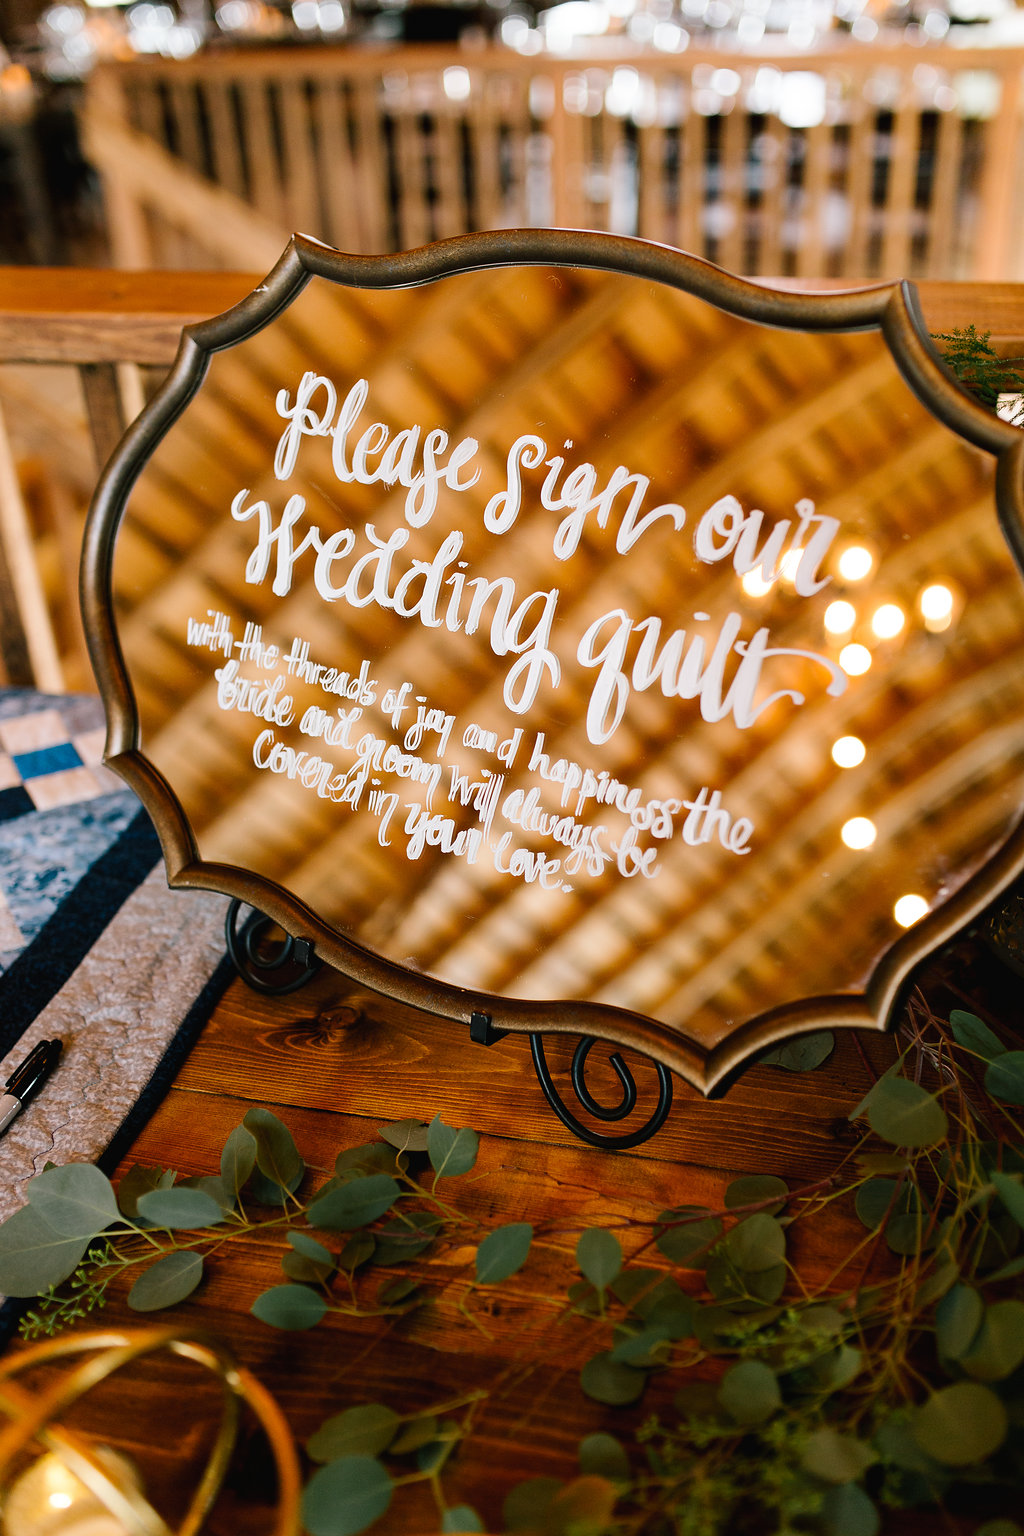 Jade and Seth Bloom Lake Barn wedding | Allison Hopperstad Photography | A Vintage Touch Weddings planning nad design | Day of Coordinating by Sixpence Events | mirror sign for wedding quilt